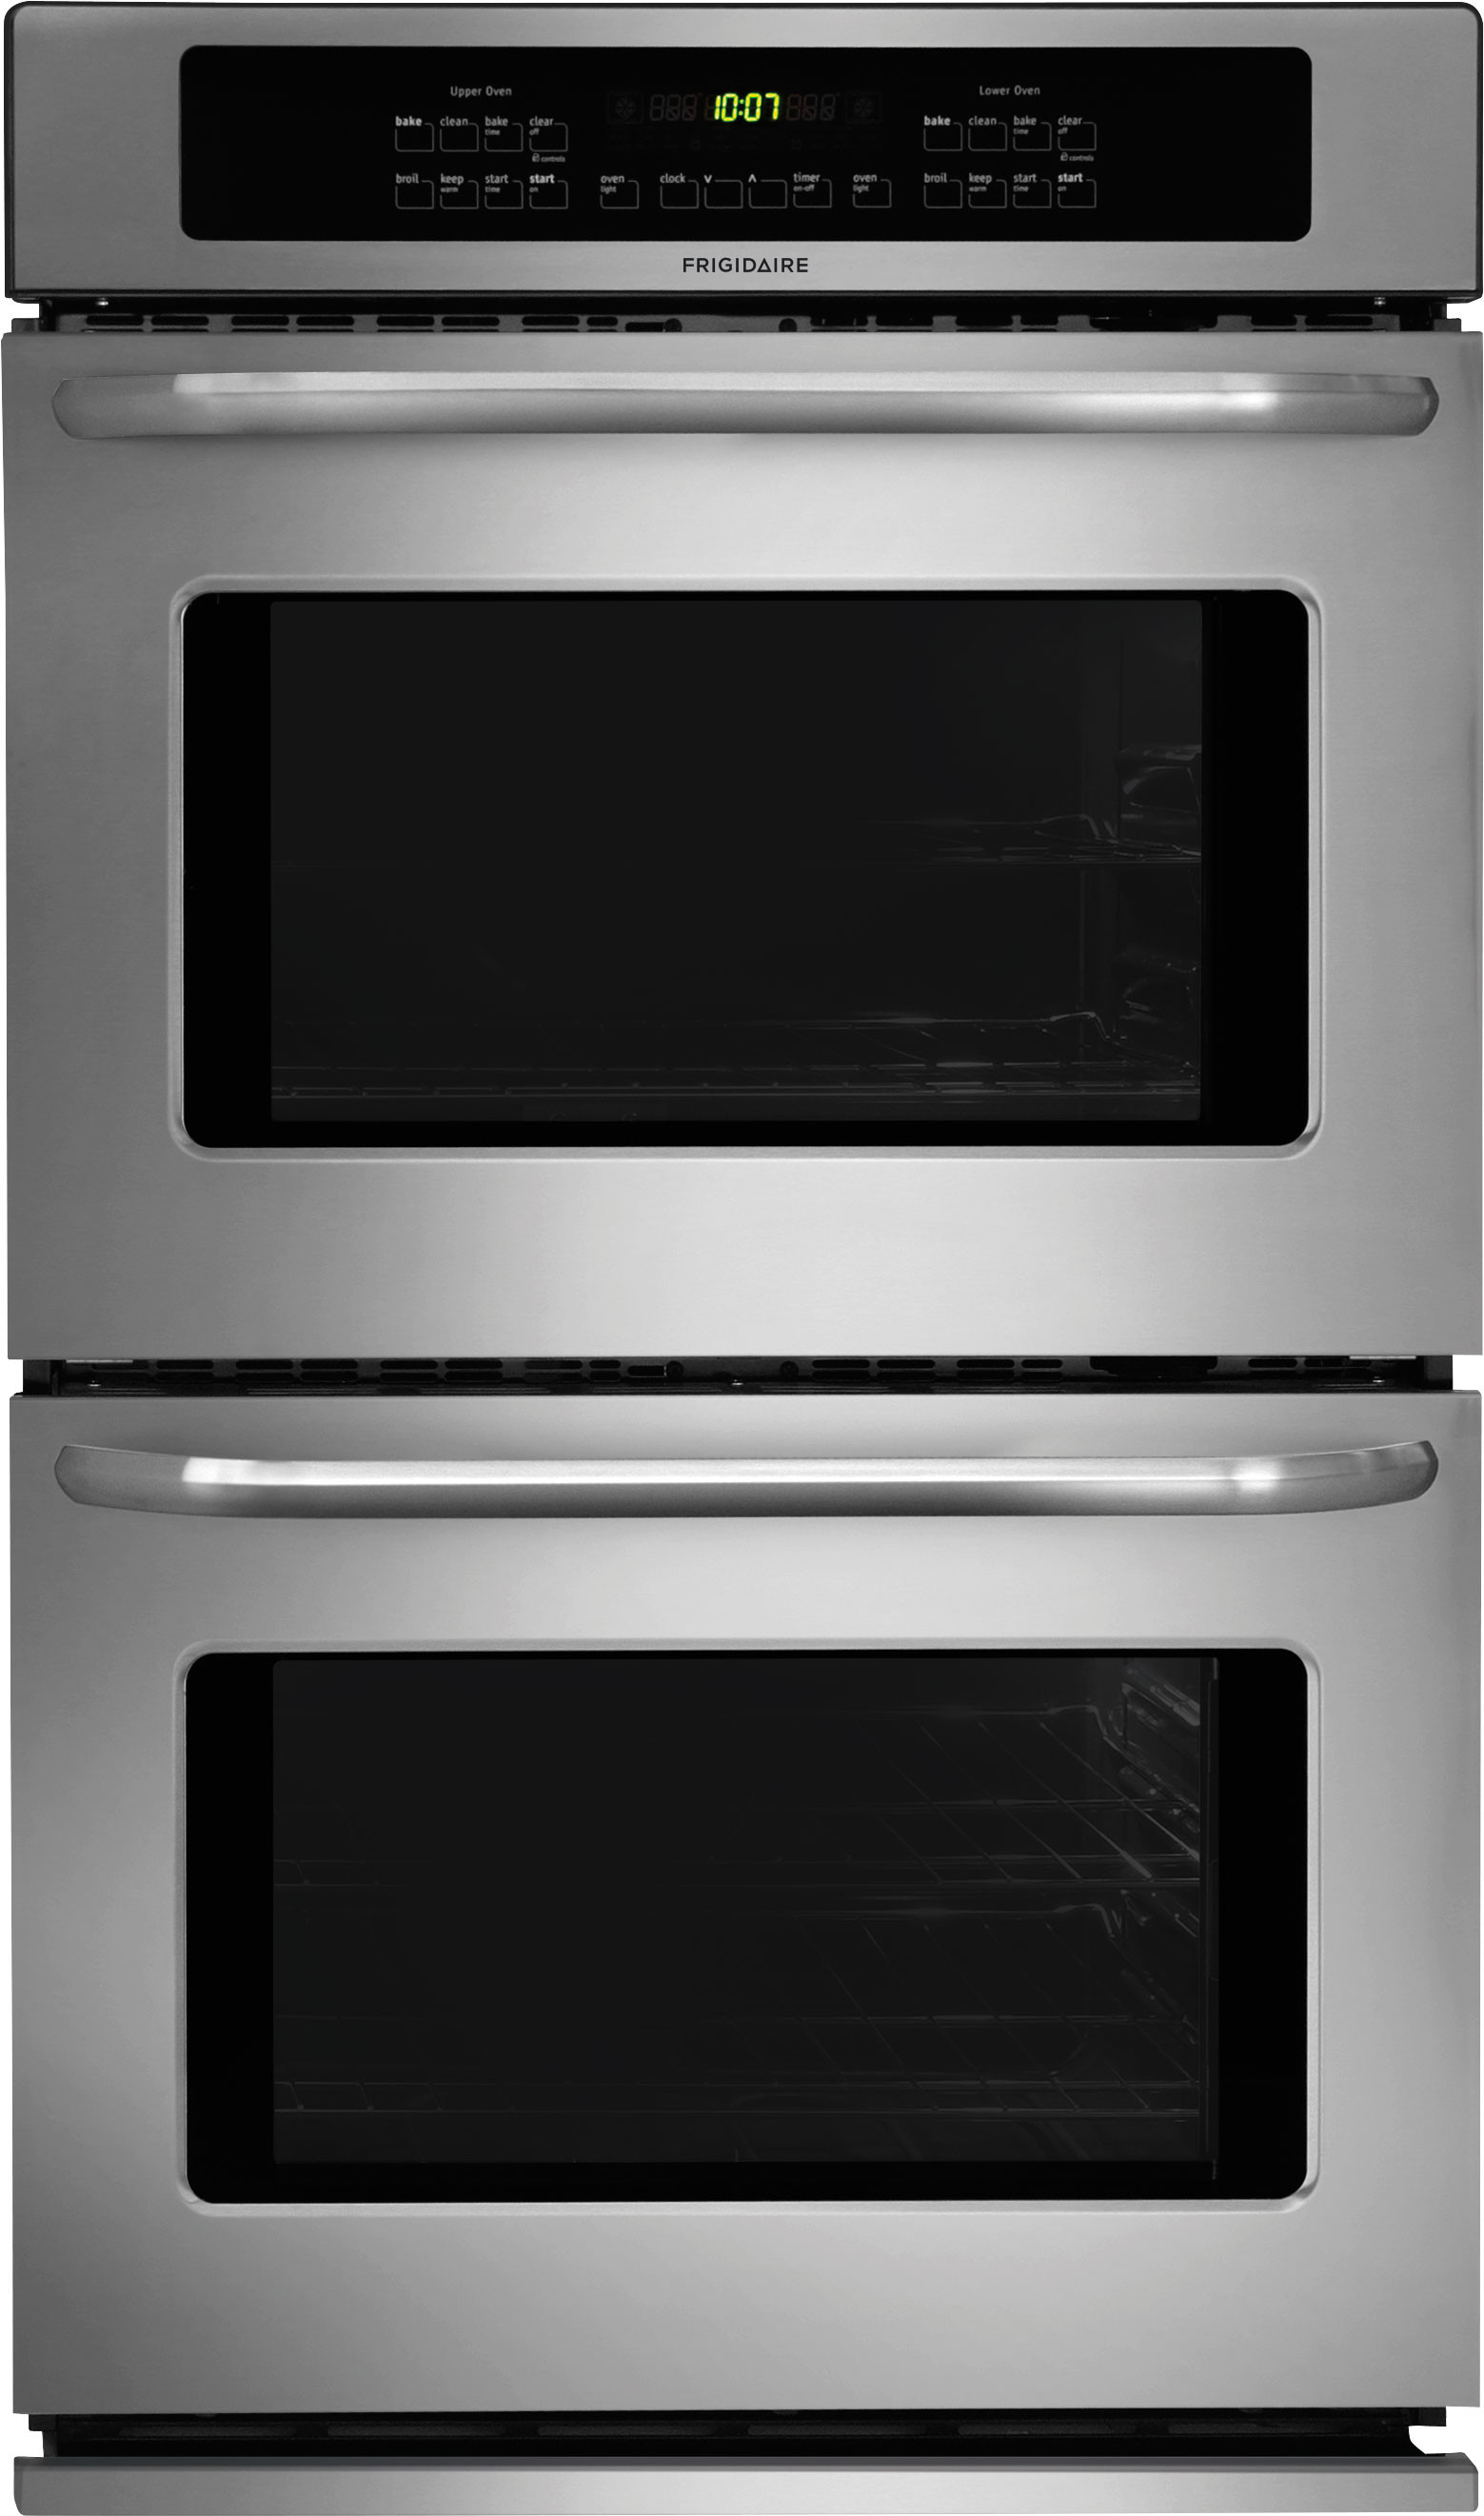 Frigidaire Ffet3025ps 30 Inch Double Electric Wall Oven With 46 Cu Baking Wiring Diagram Ft Self Clean Ovens Delay Option Timed Cook Keep Warm Setting And Auto